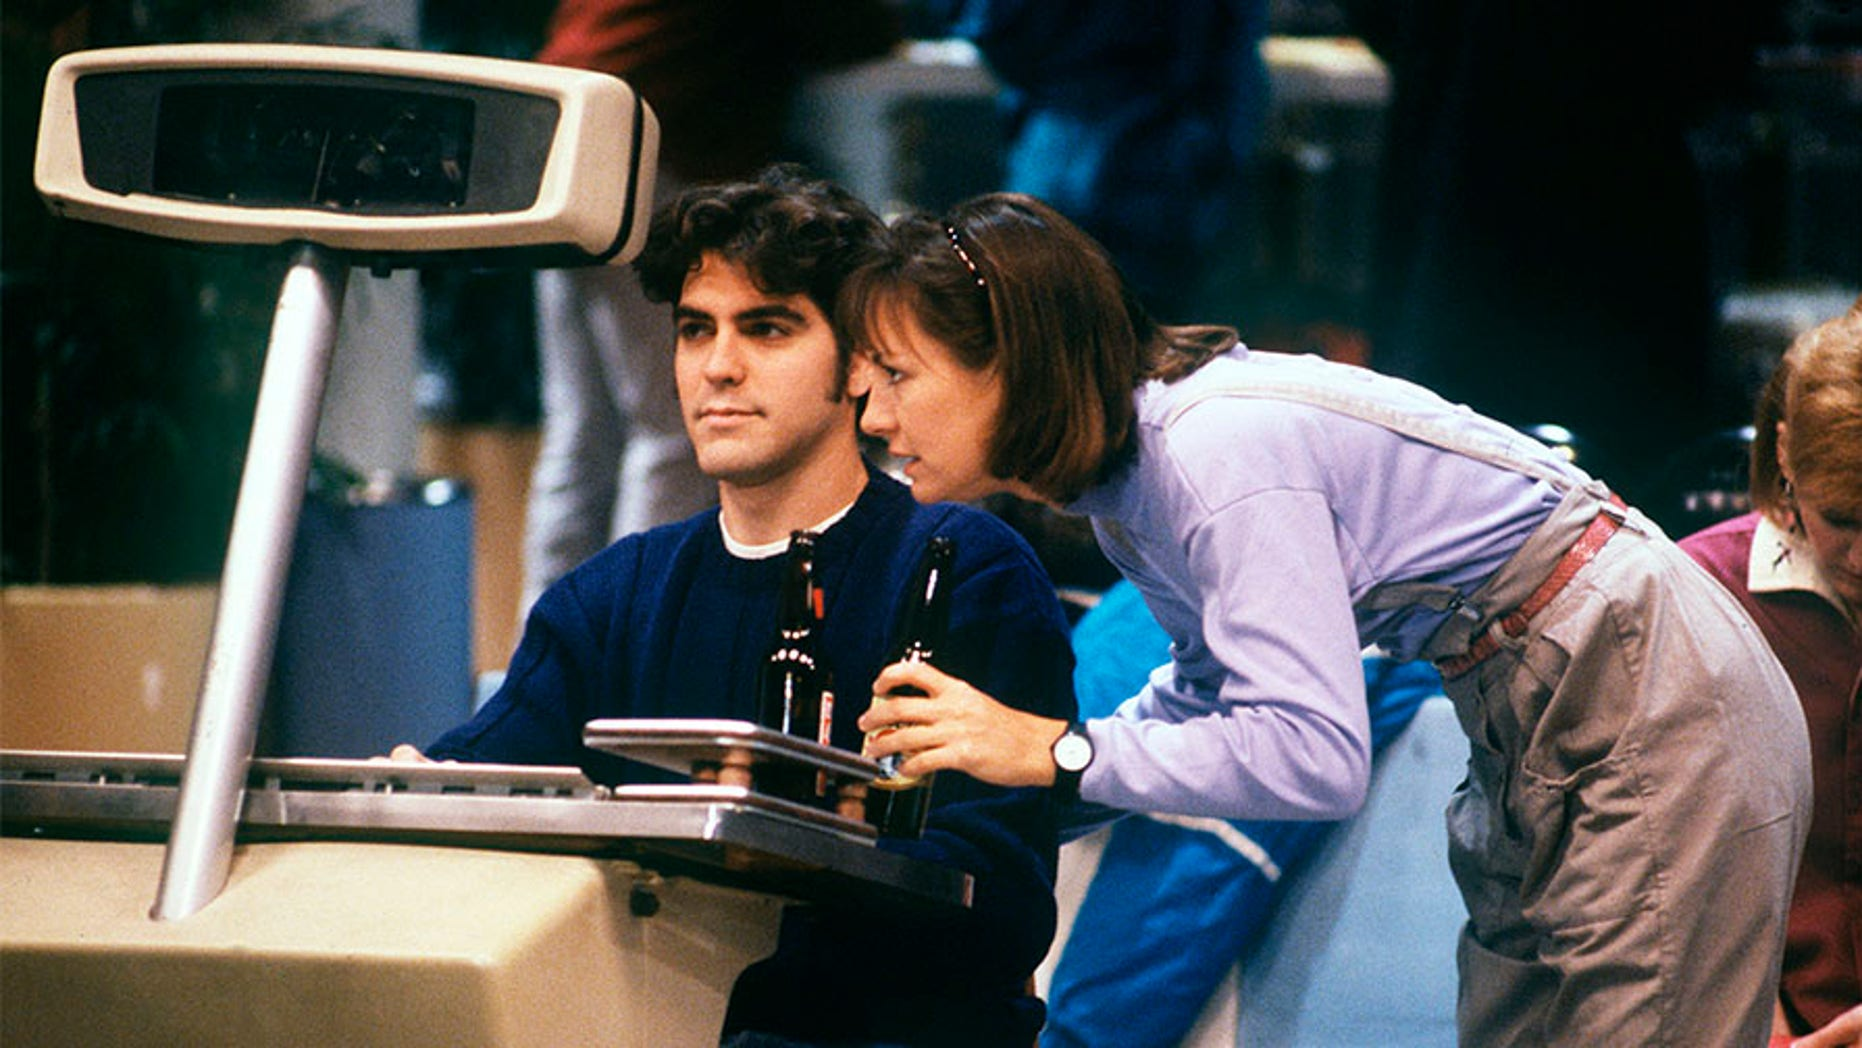 """In this 1988 episode of """"Roseanne,"""" Jackie (Laurie Metcalf) had a salacious bet on the line with Booker (George Clooney) on bowling night."""